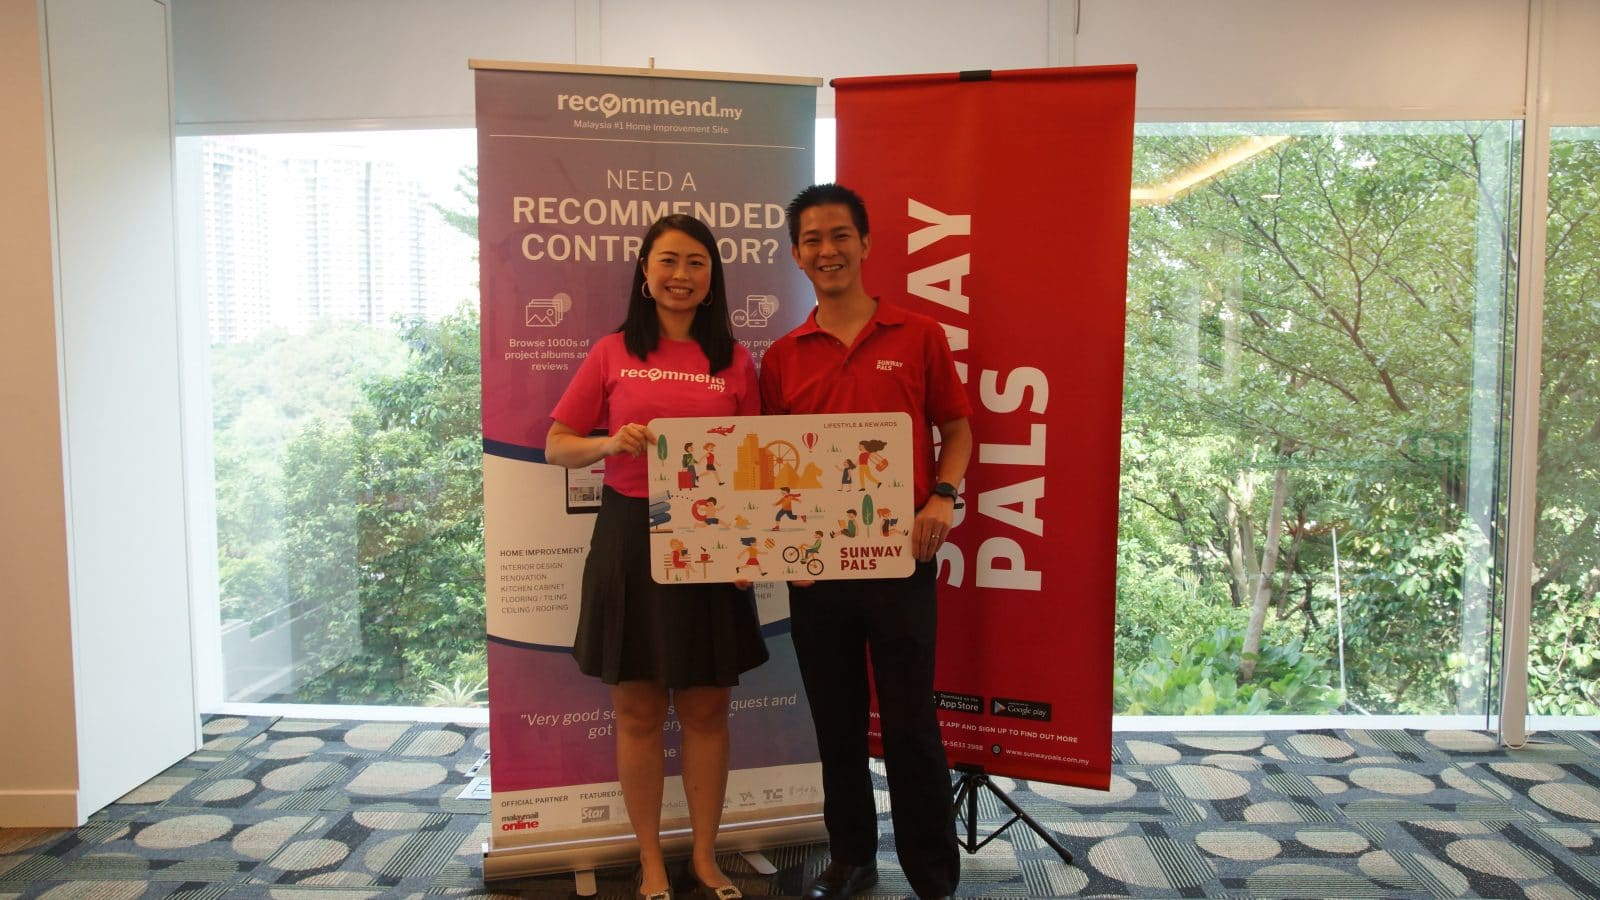 Recommend.my Is Now a Sunway Pals Merchant, so Start Redeeming Your Pals Points Now!